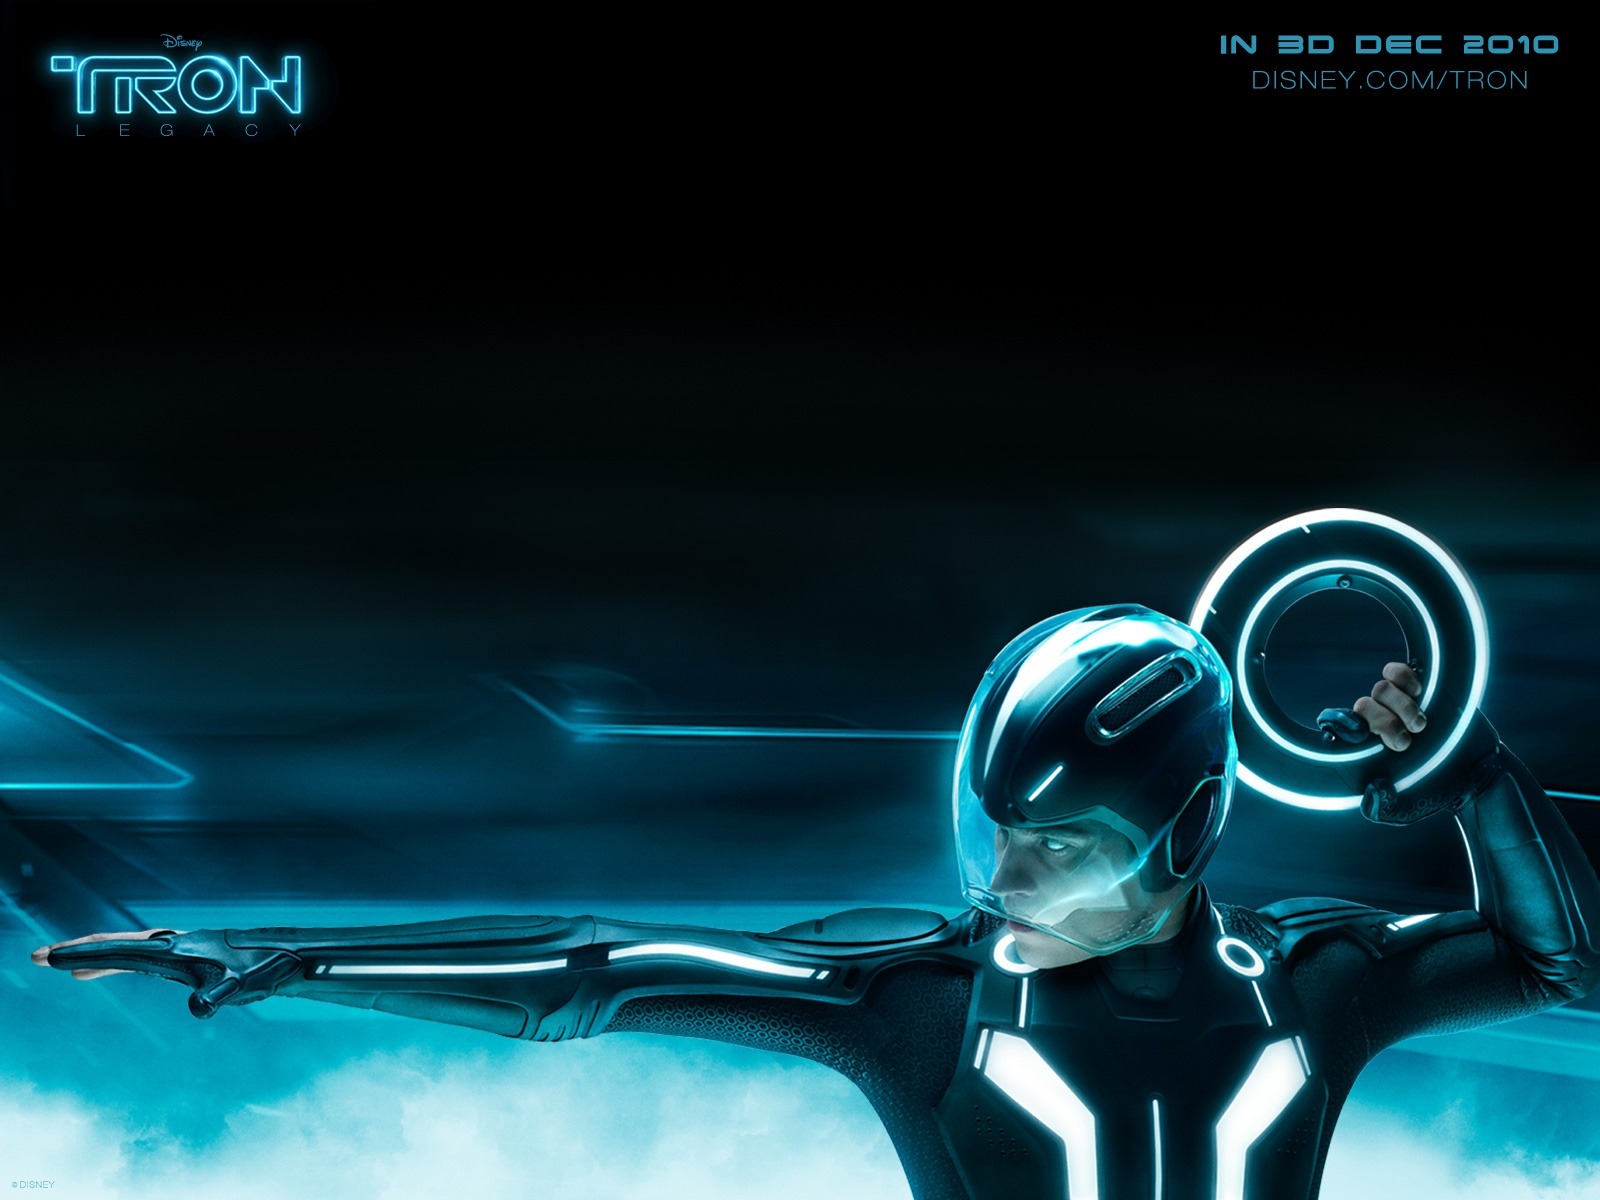 tron legacy disney 3d movie wallpapers in jpg format for free download